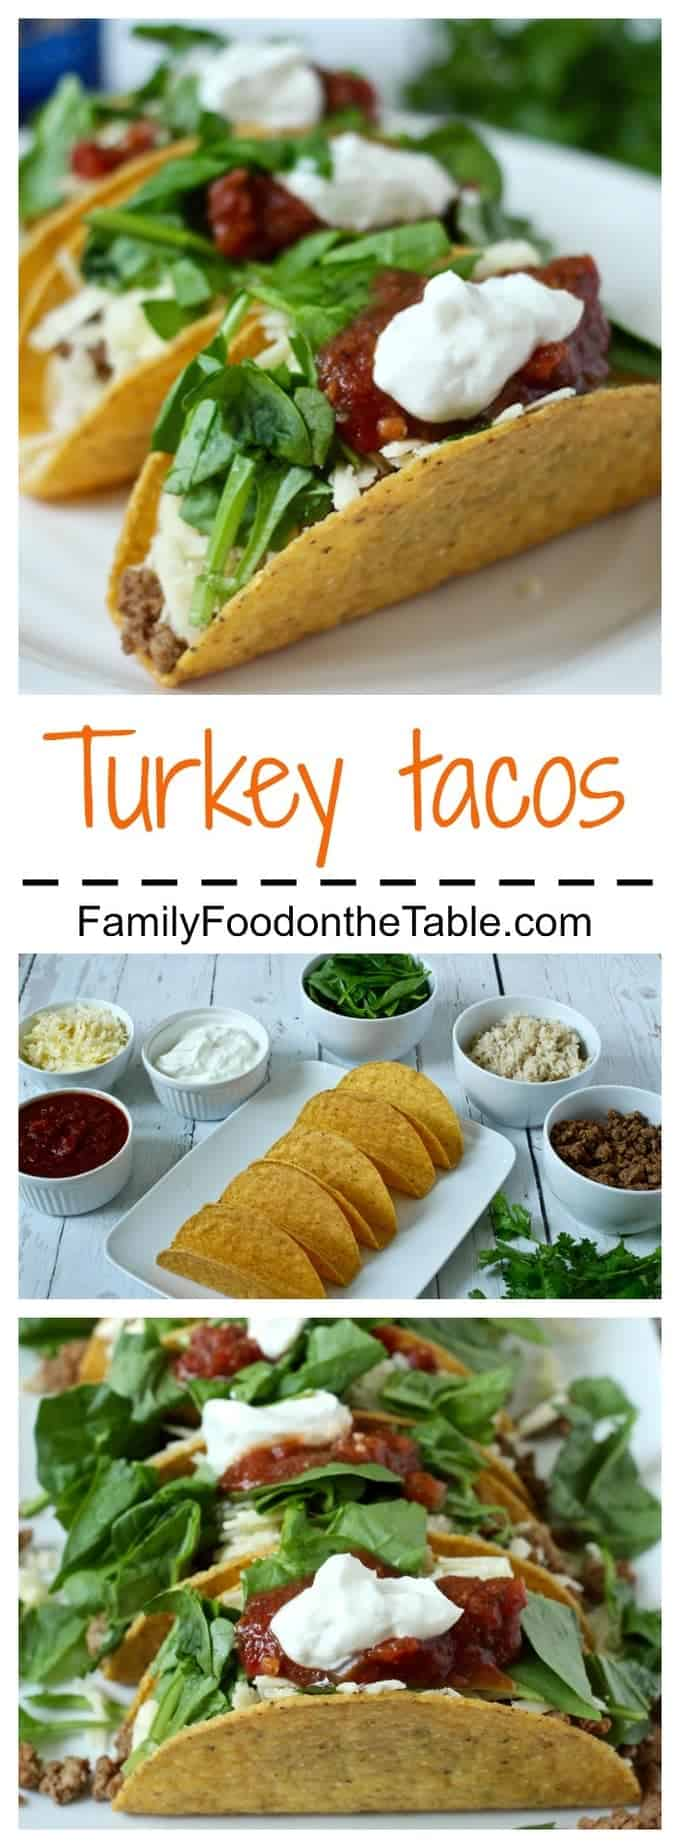 An easy, healthier taco night with ground turkey and homemade taco seasoning | FamilyFoodontheTable.com